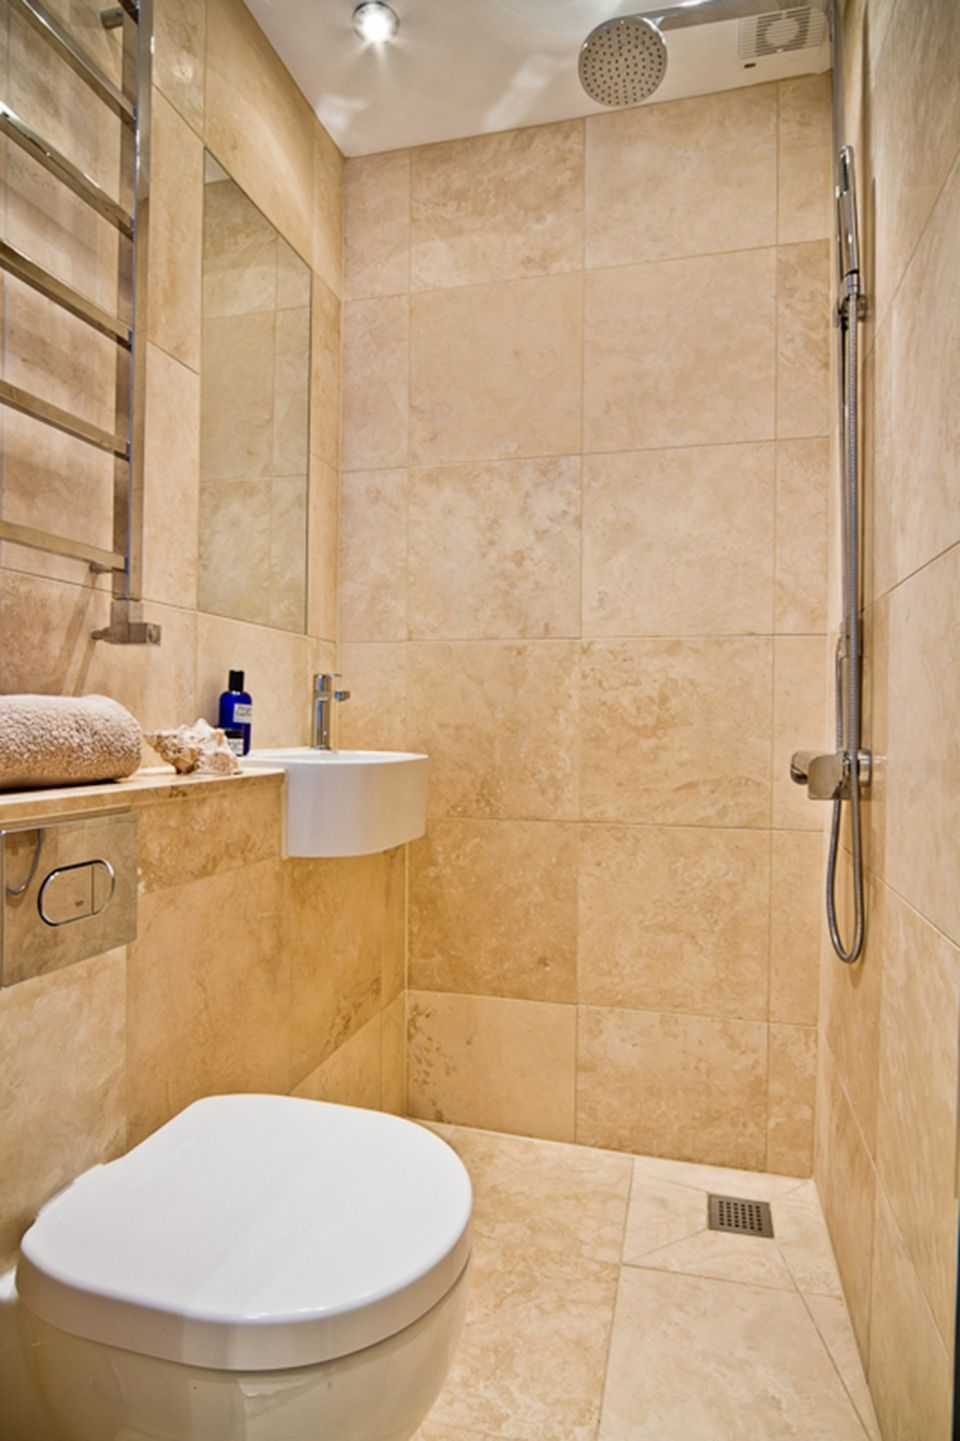 Made from a broom cupboard | Ensuite shower room, Wet room ...